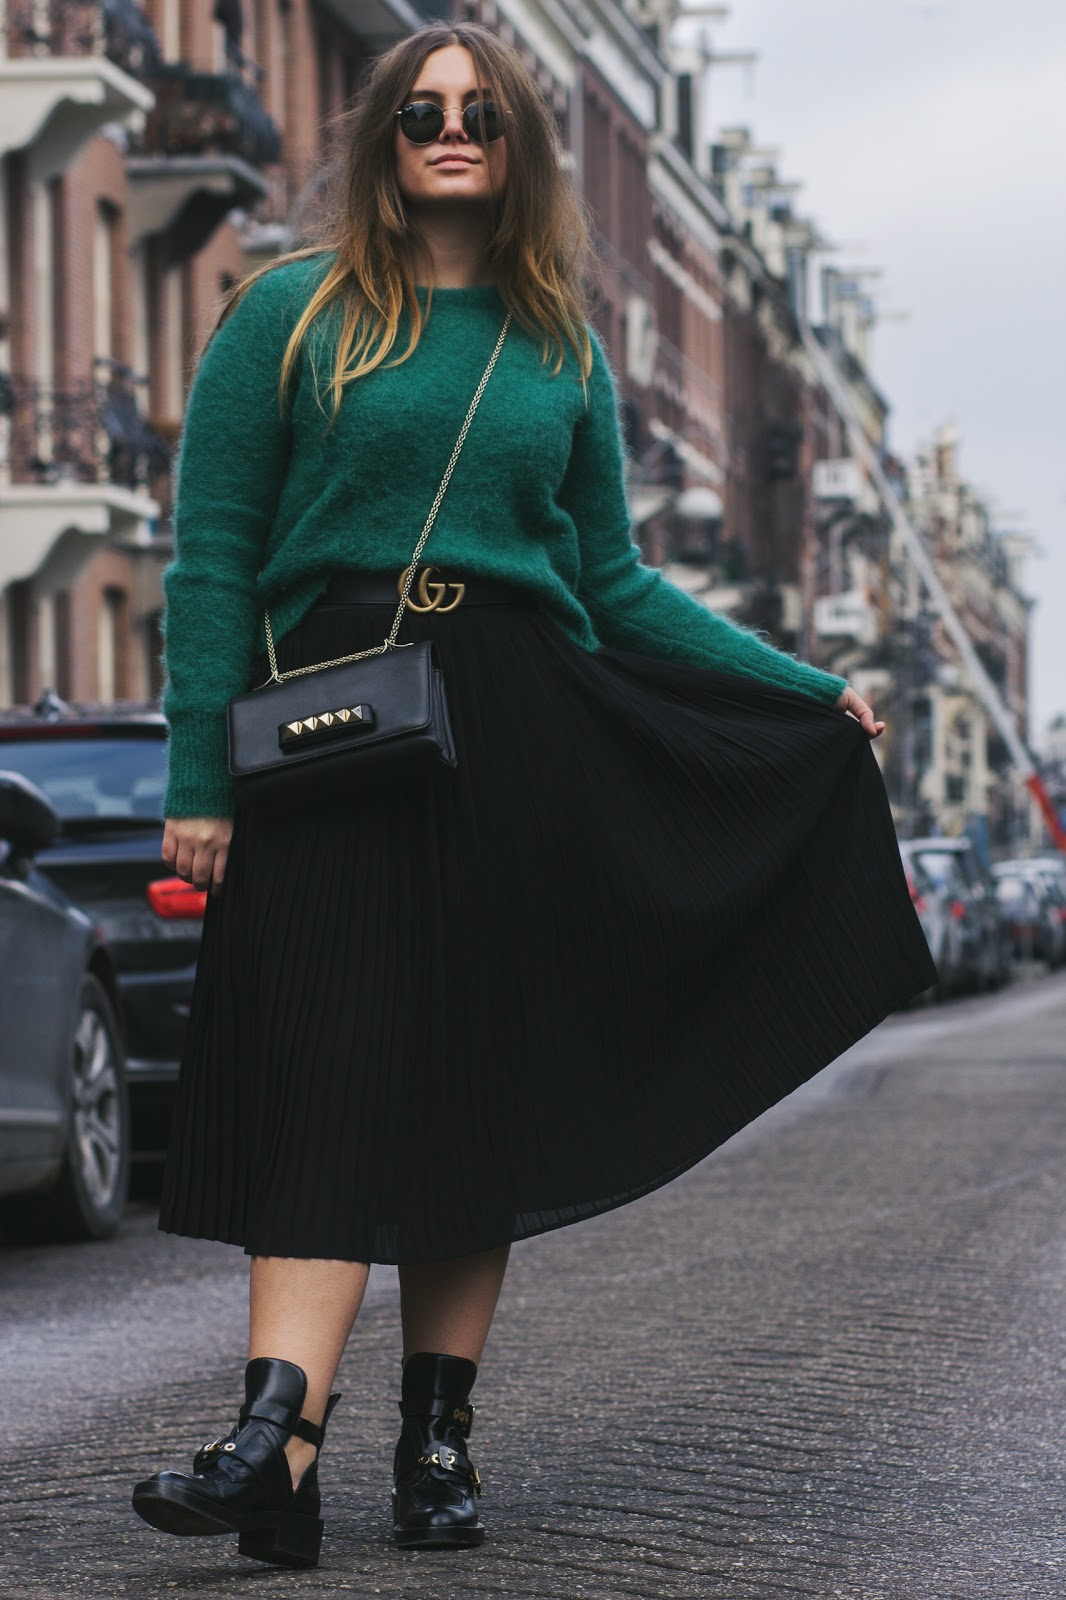 fashion, blogger, dominique candido, mode, outfit, post, gucci, zadig et voltaire, ray ban, valentino, balenciaga,